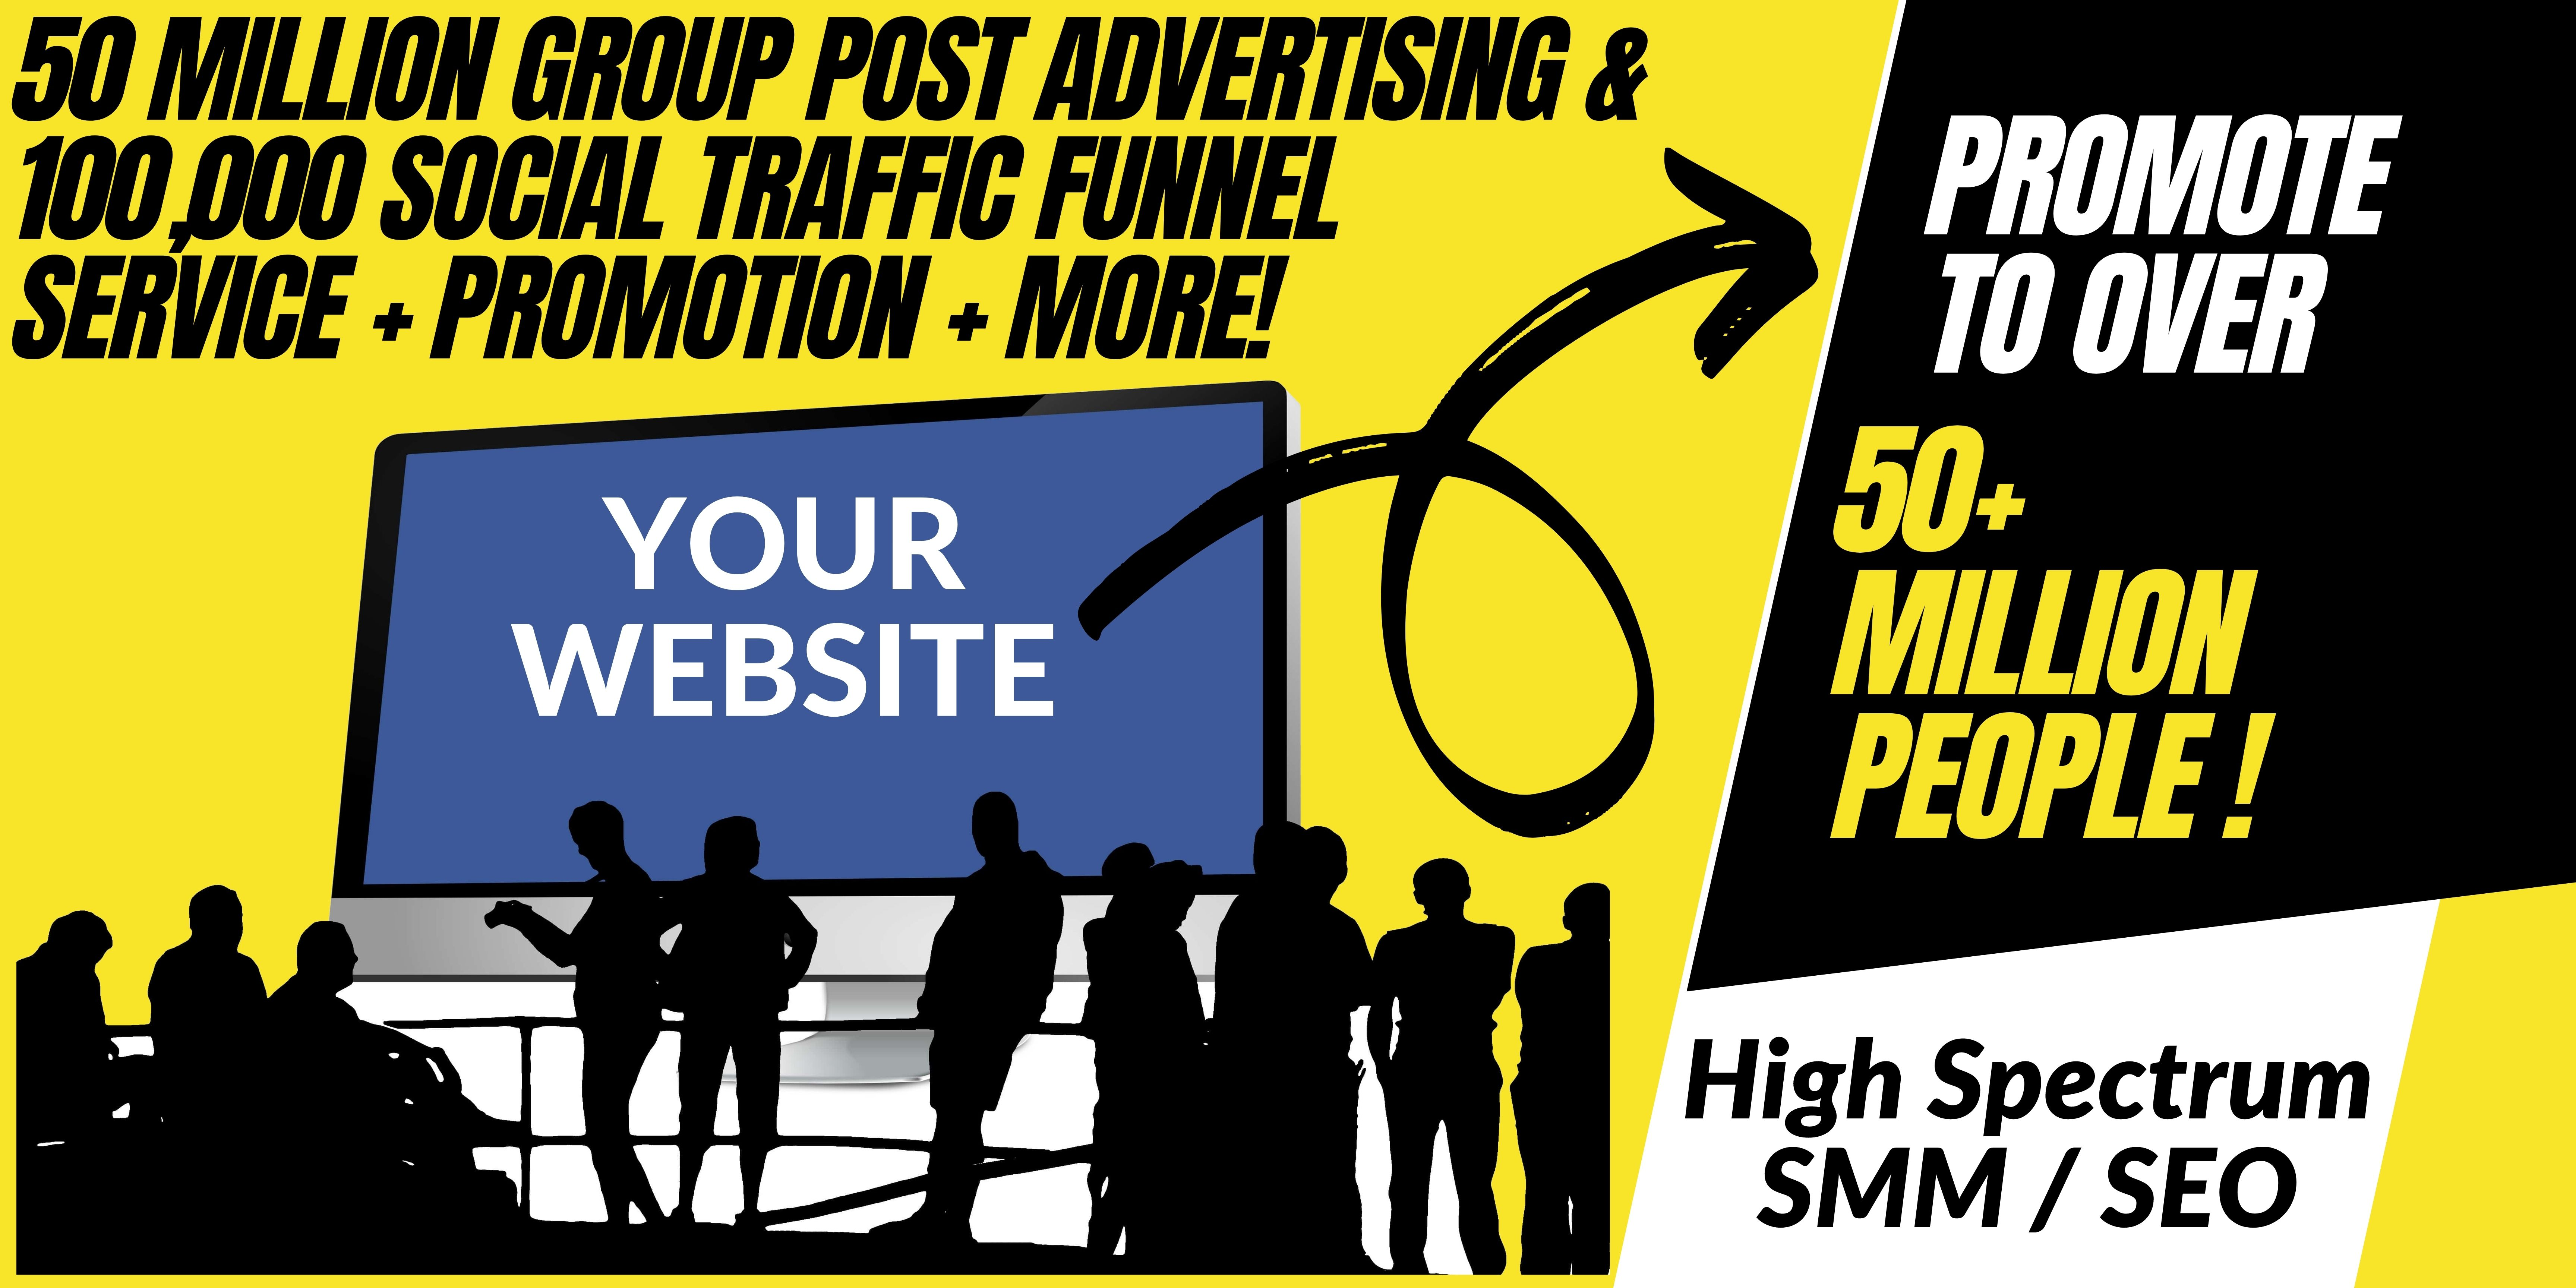 50 Million Group Post Advertising & 100,000 Social Traffic Funnel Service + Promotion + More